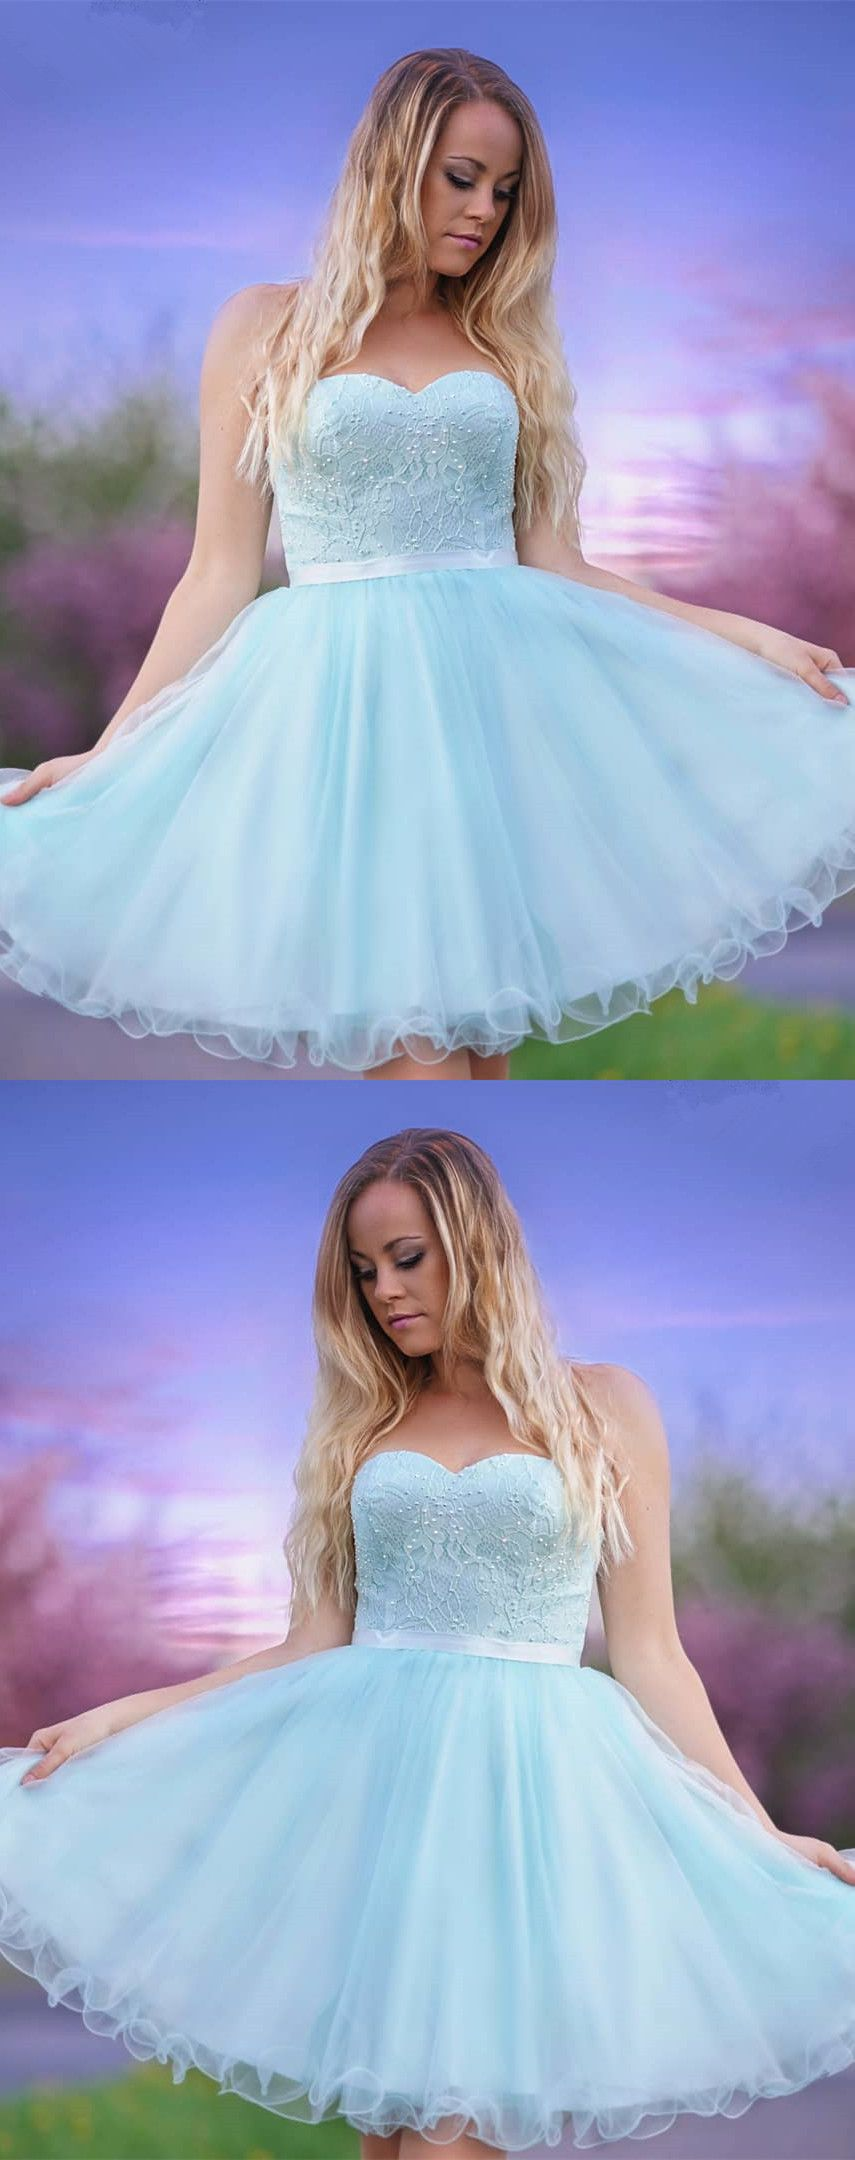 Princess strapless short party dress from modseleystore in